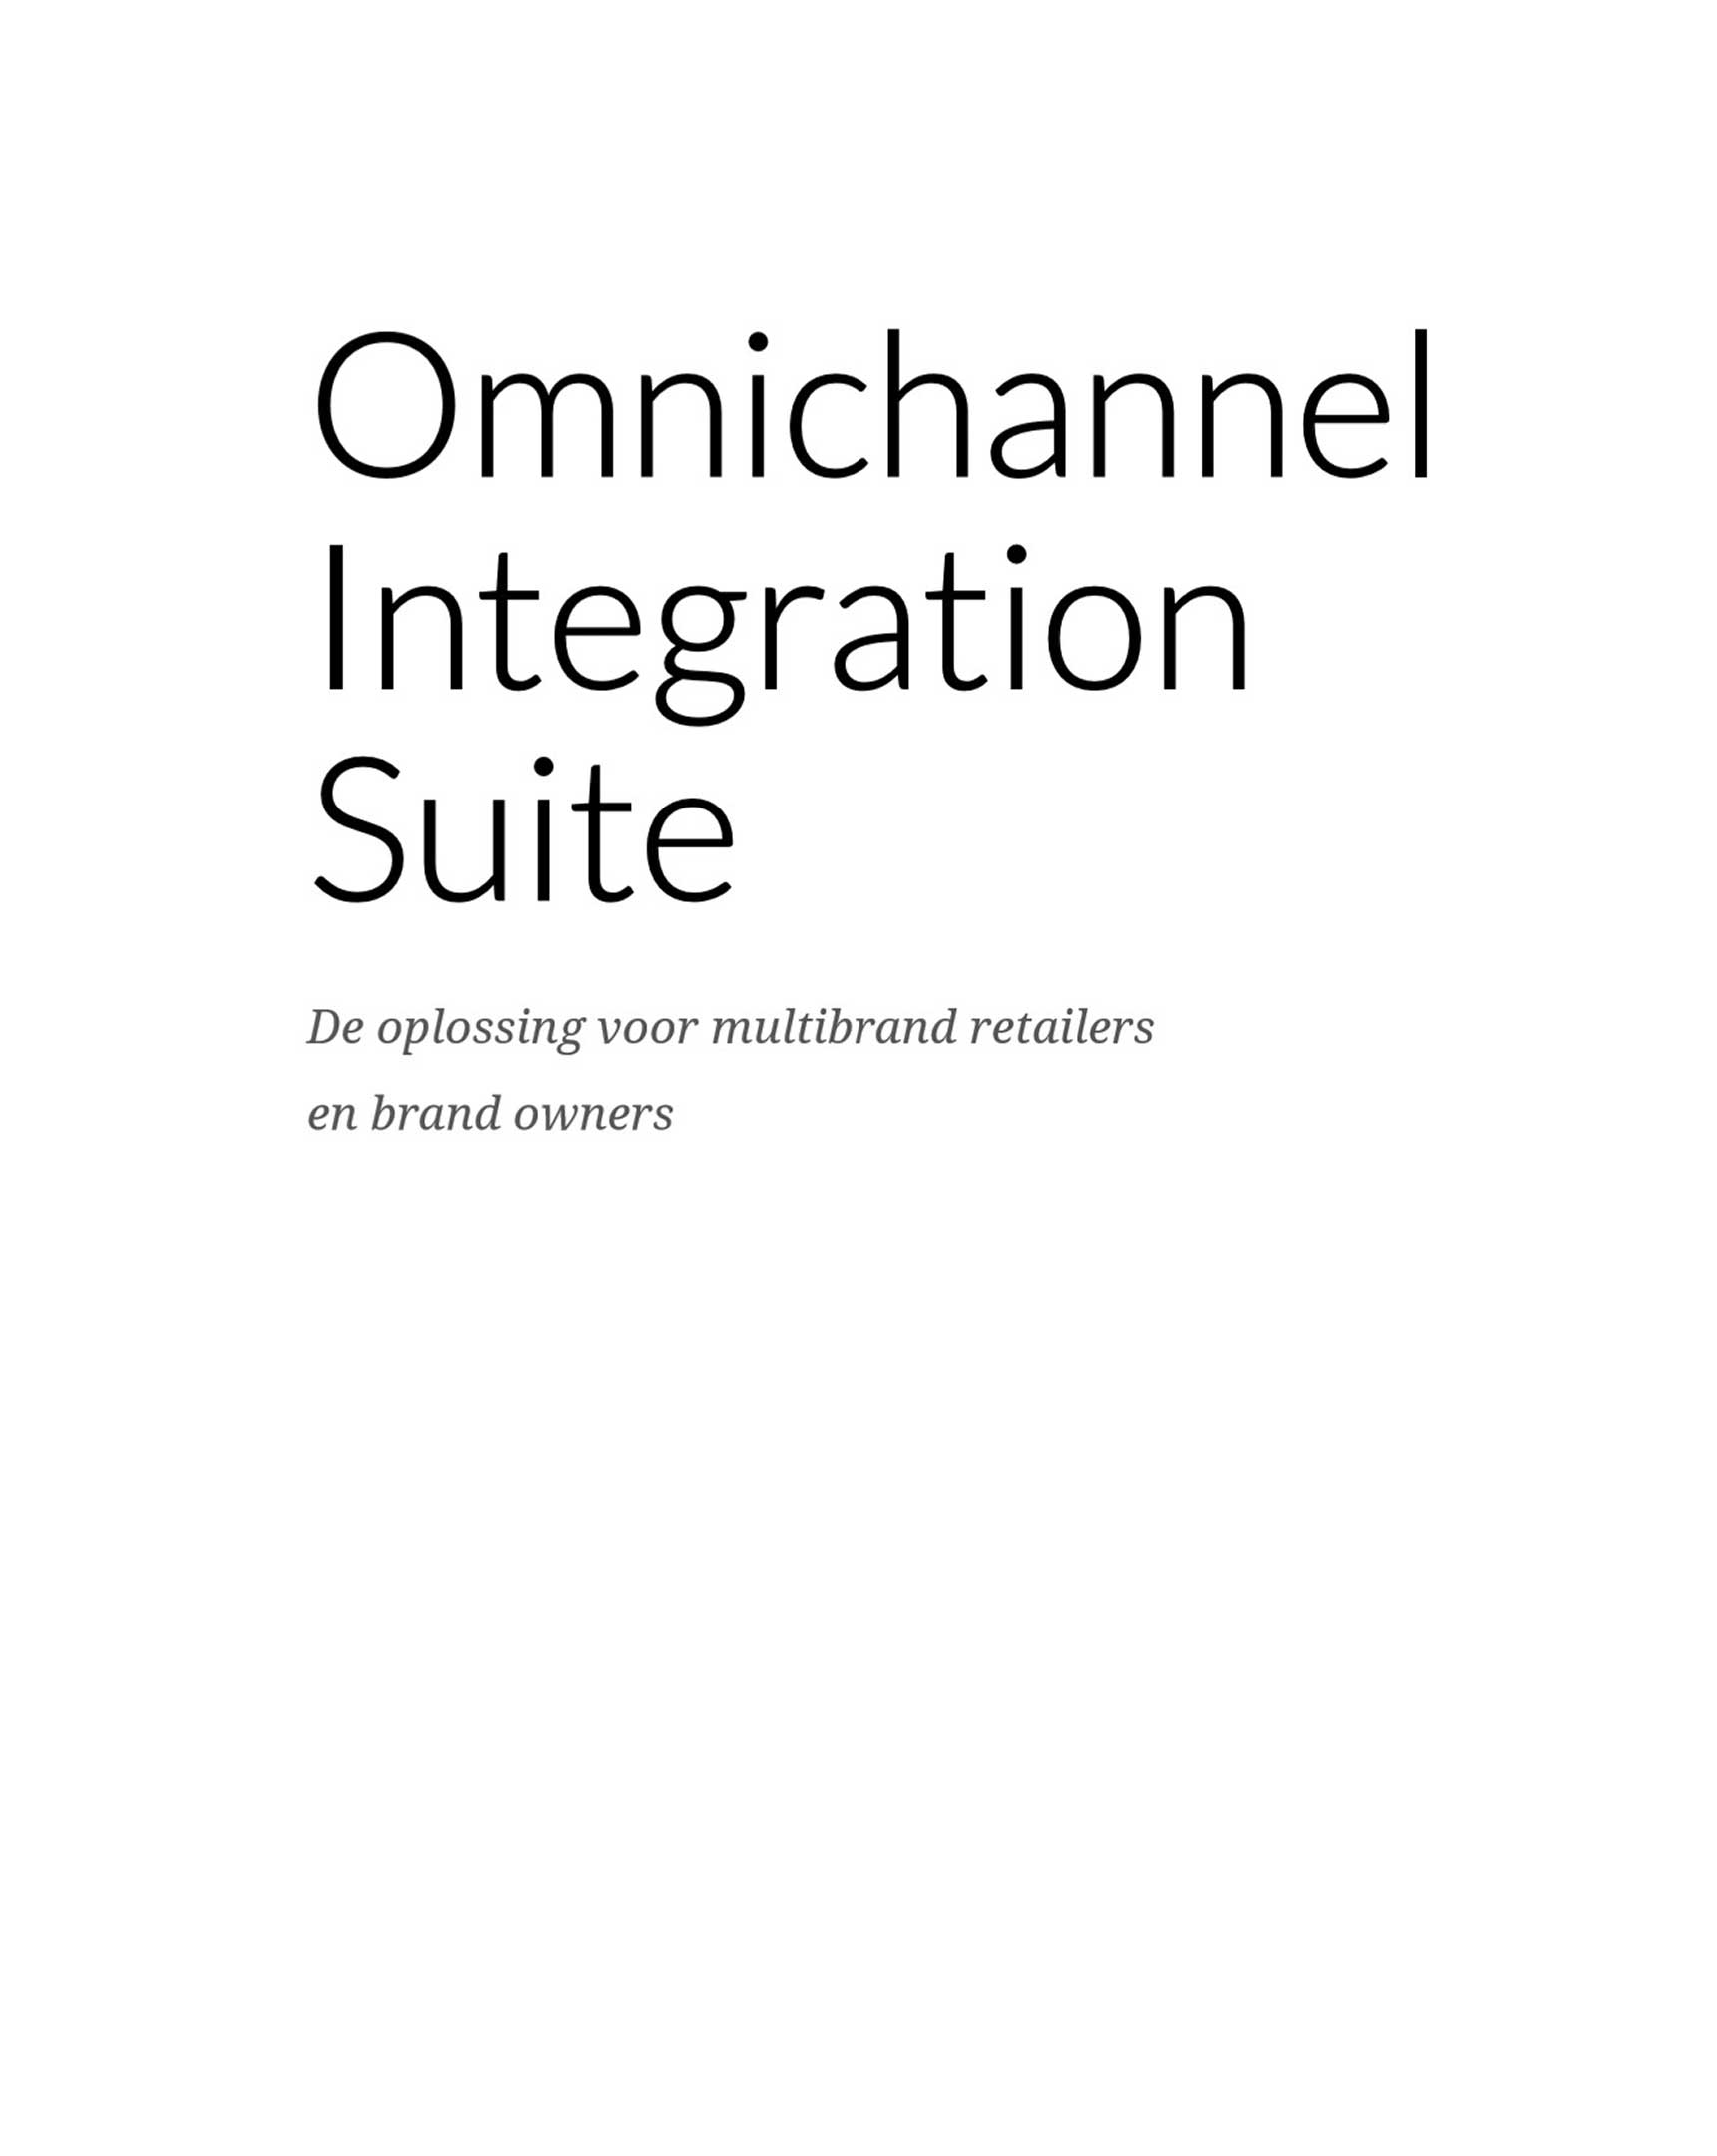 Omnichannel Integration Suite